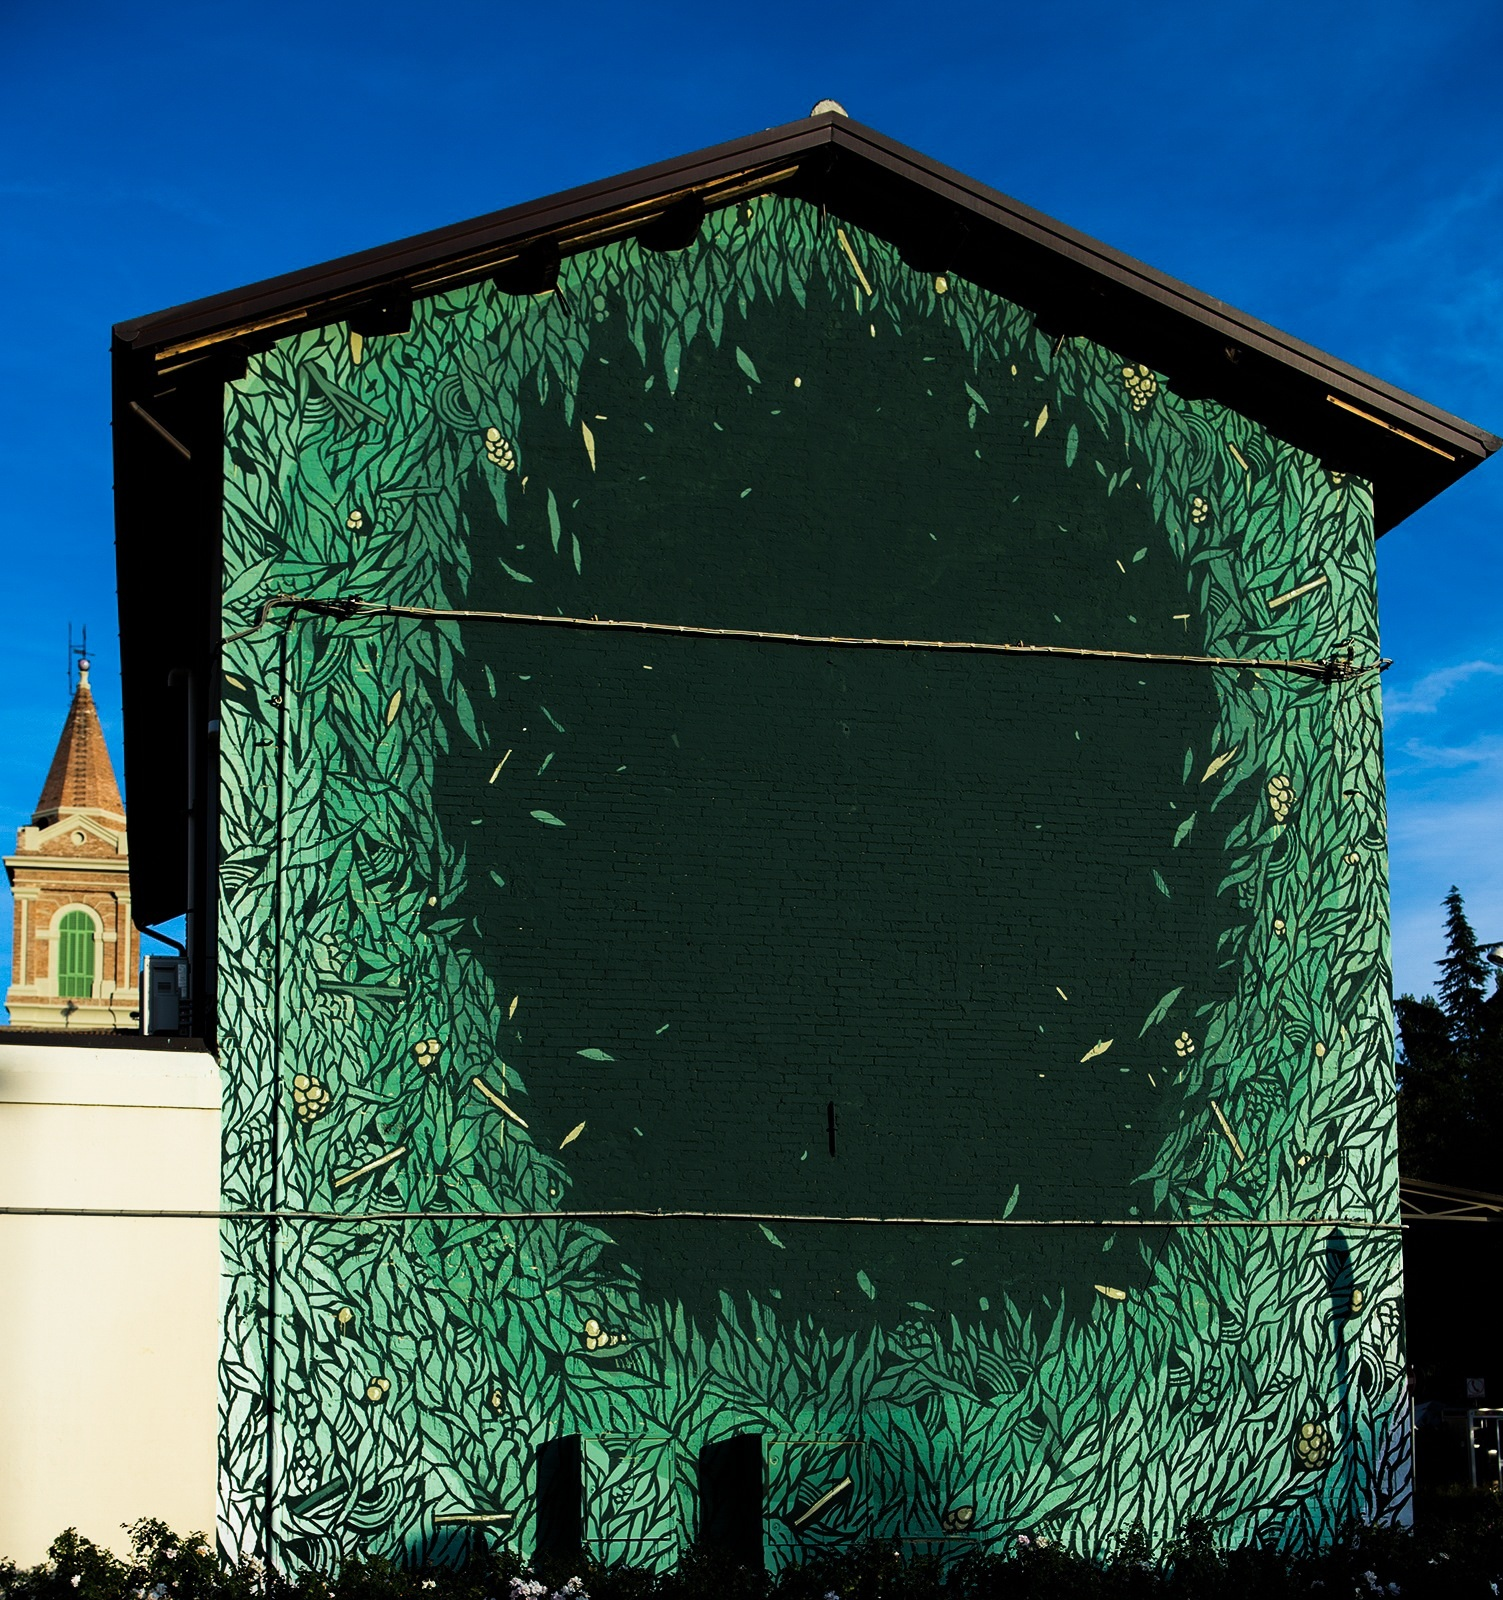 tellas-new-mural-at-biennale-del-muro-dipinto-in-dozza-02